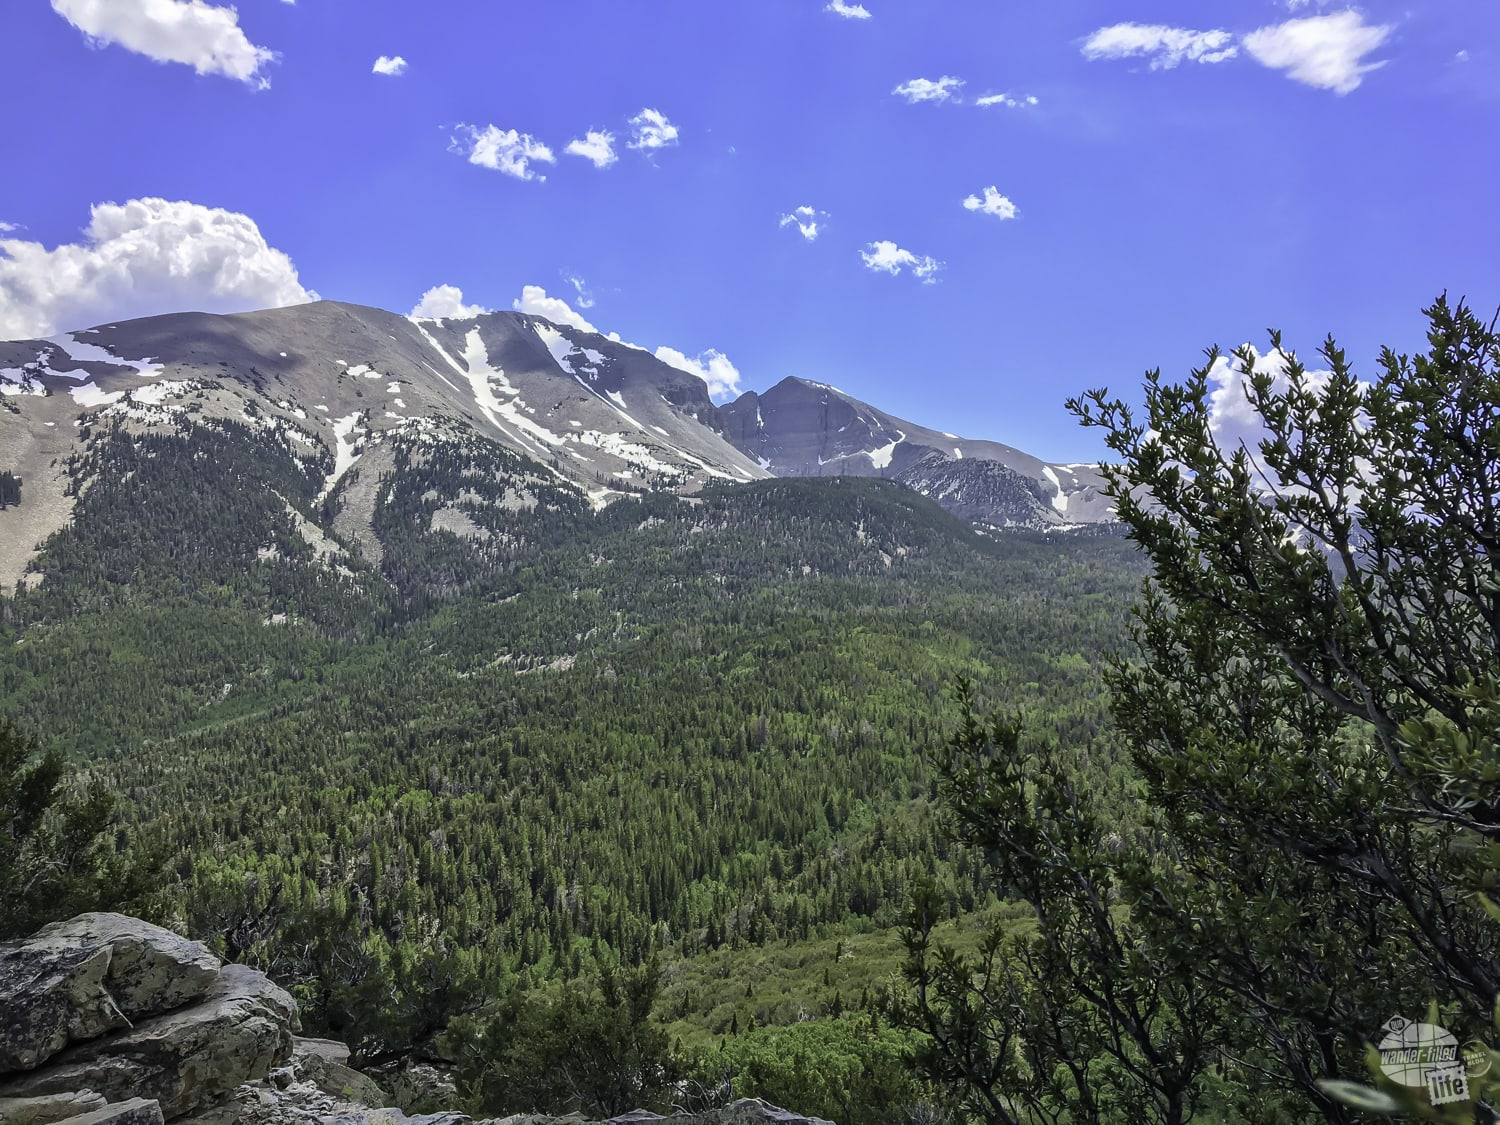 A stop at the Math Overlook in Great Basin NP offers great views of Wheeler Peak.